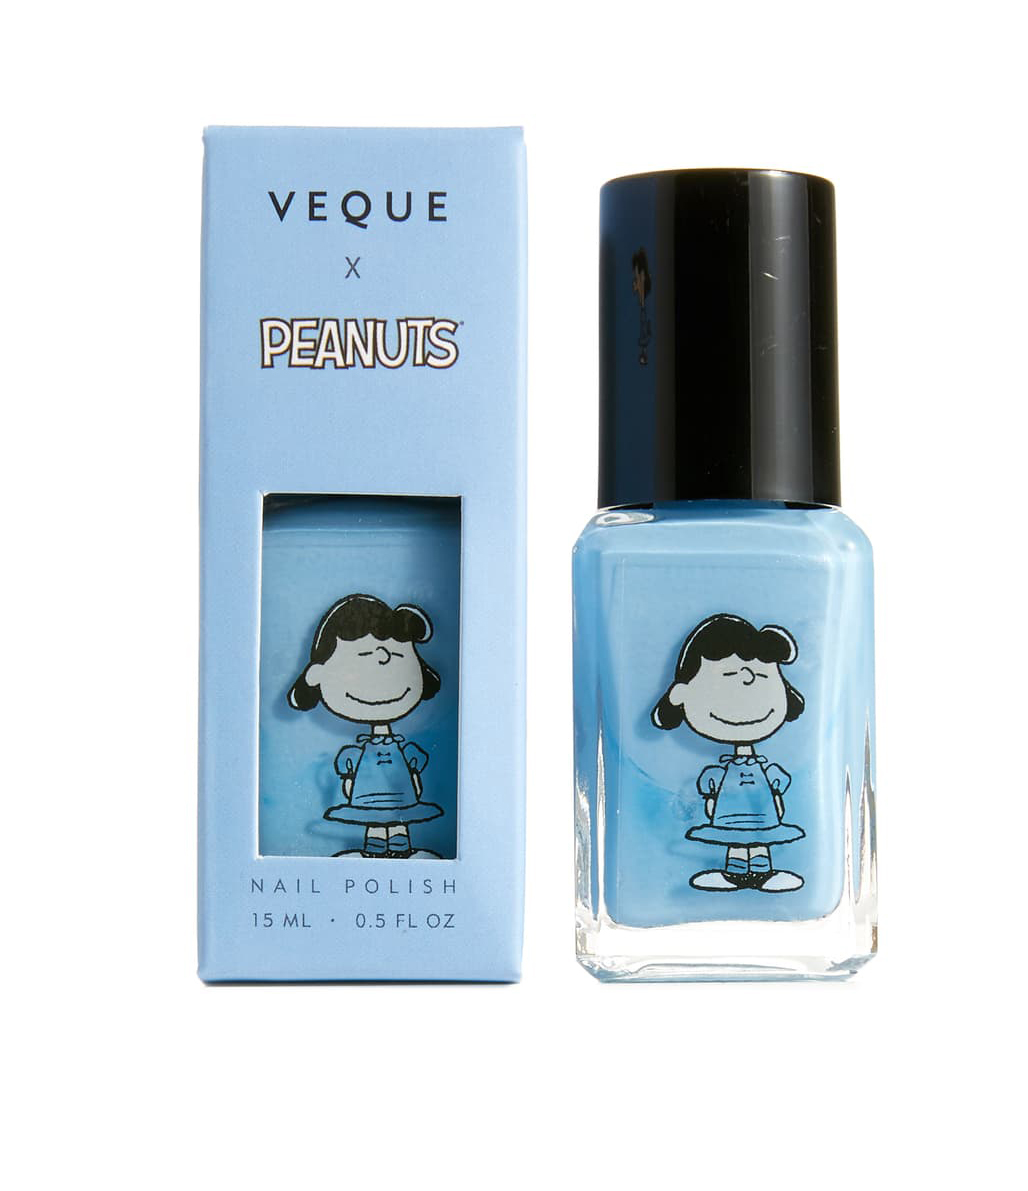 Veque x Peanuts Ve Vernis Nail Polish in Blue-Lucy at Nordstrom